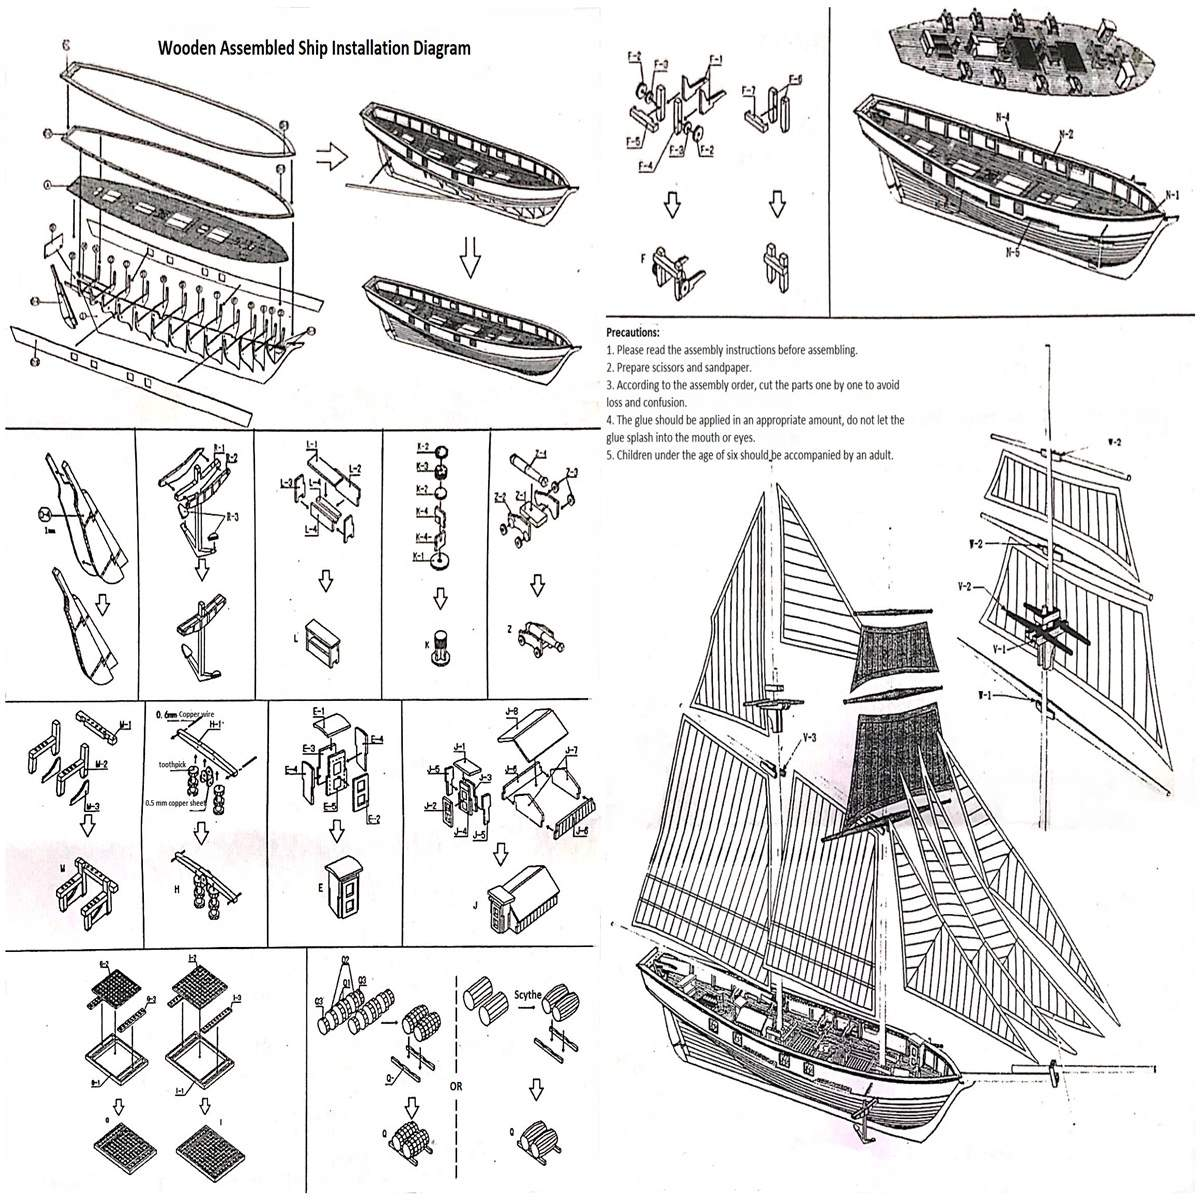 US $17 24 22% OFF|1:130 Scale Sailboat Model 380x130x270mm DIY Ship  Assembly Model Kits Classical Handmade Wooden Sailing Boats Children Toys  Gift-in